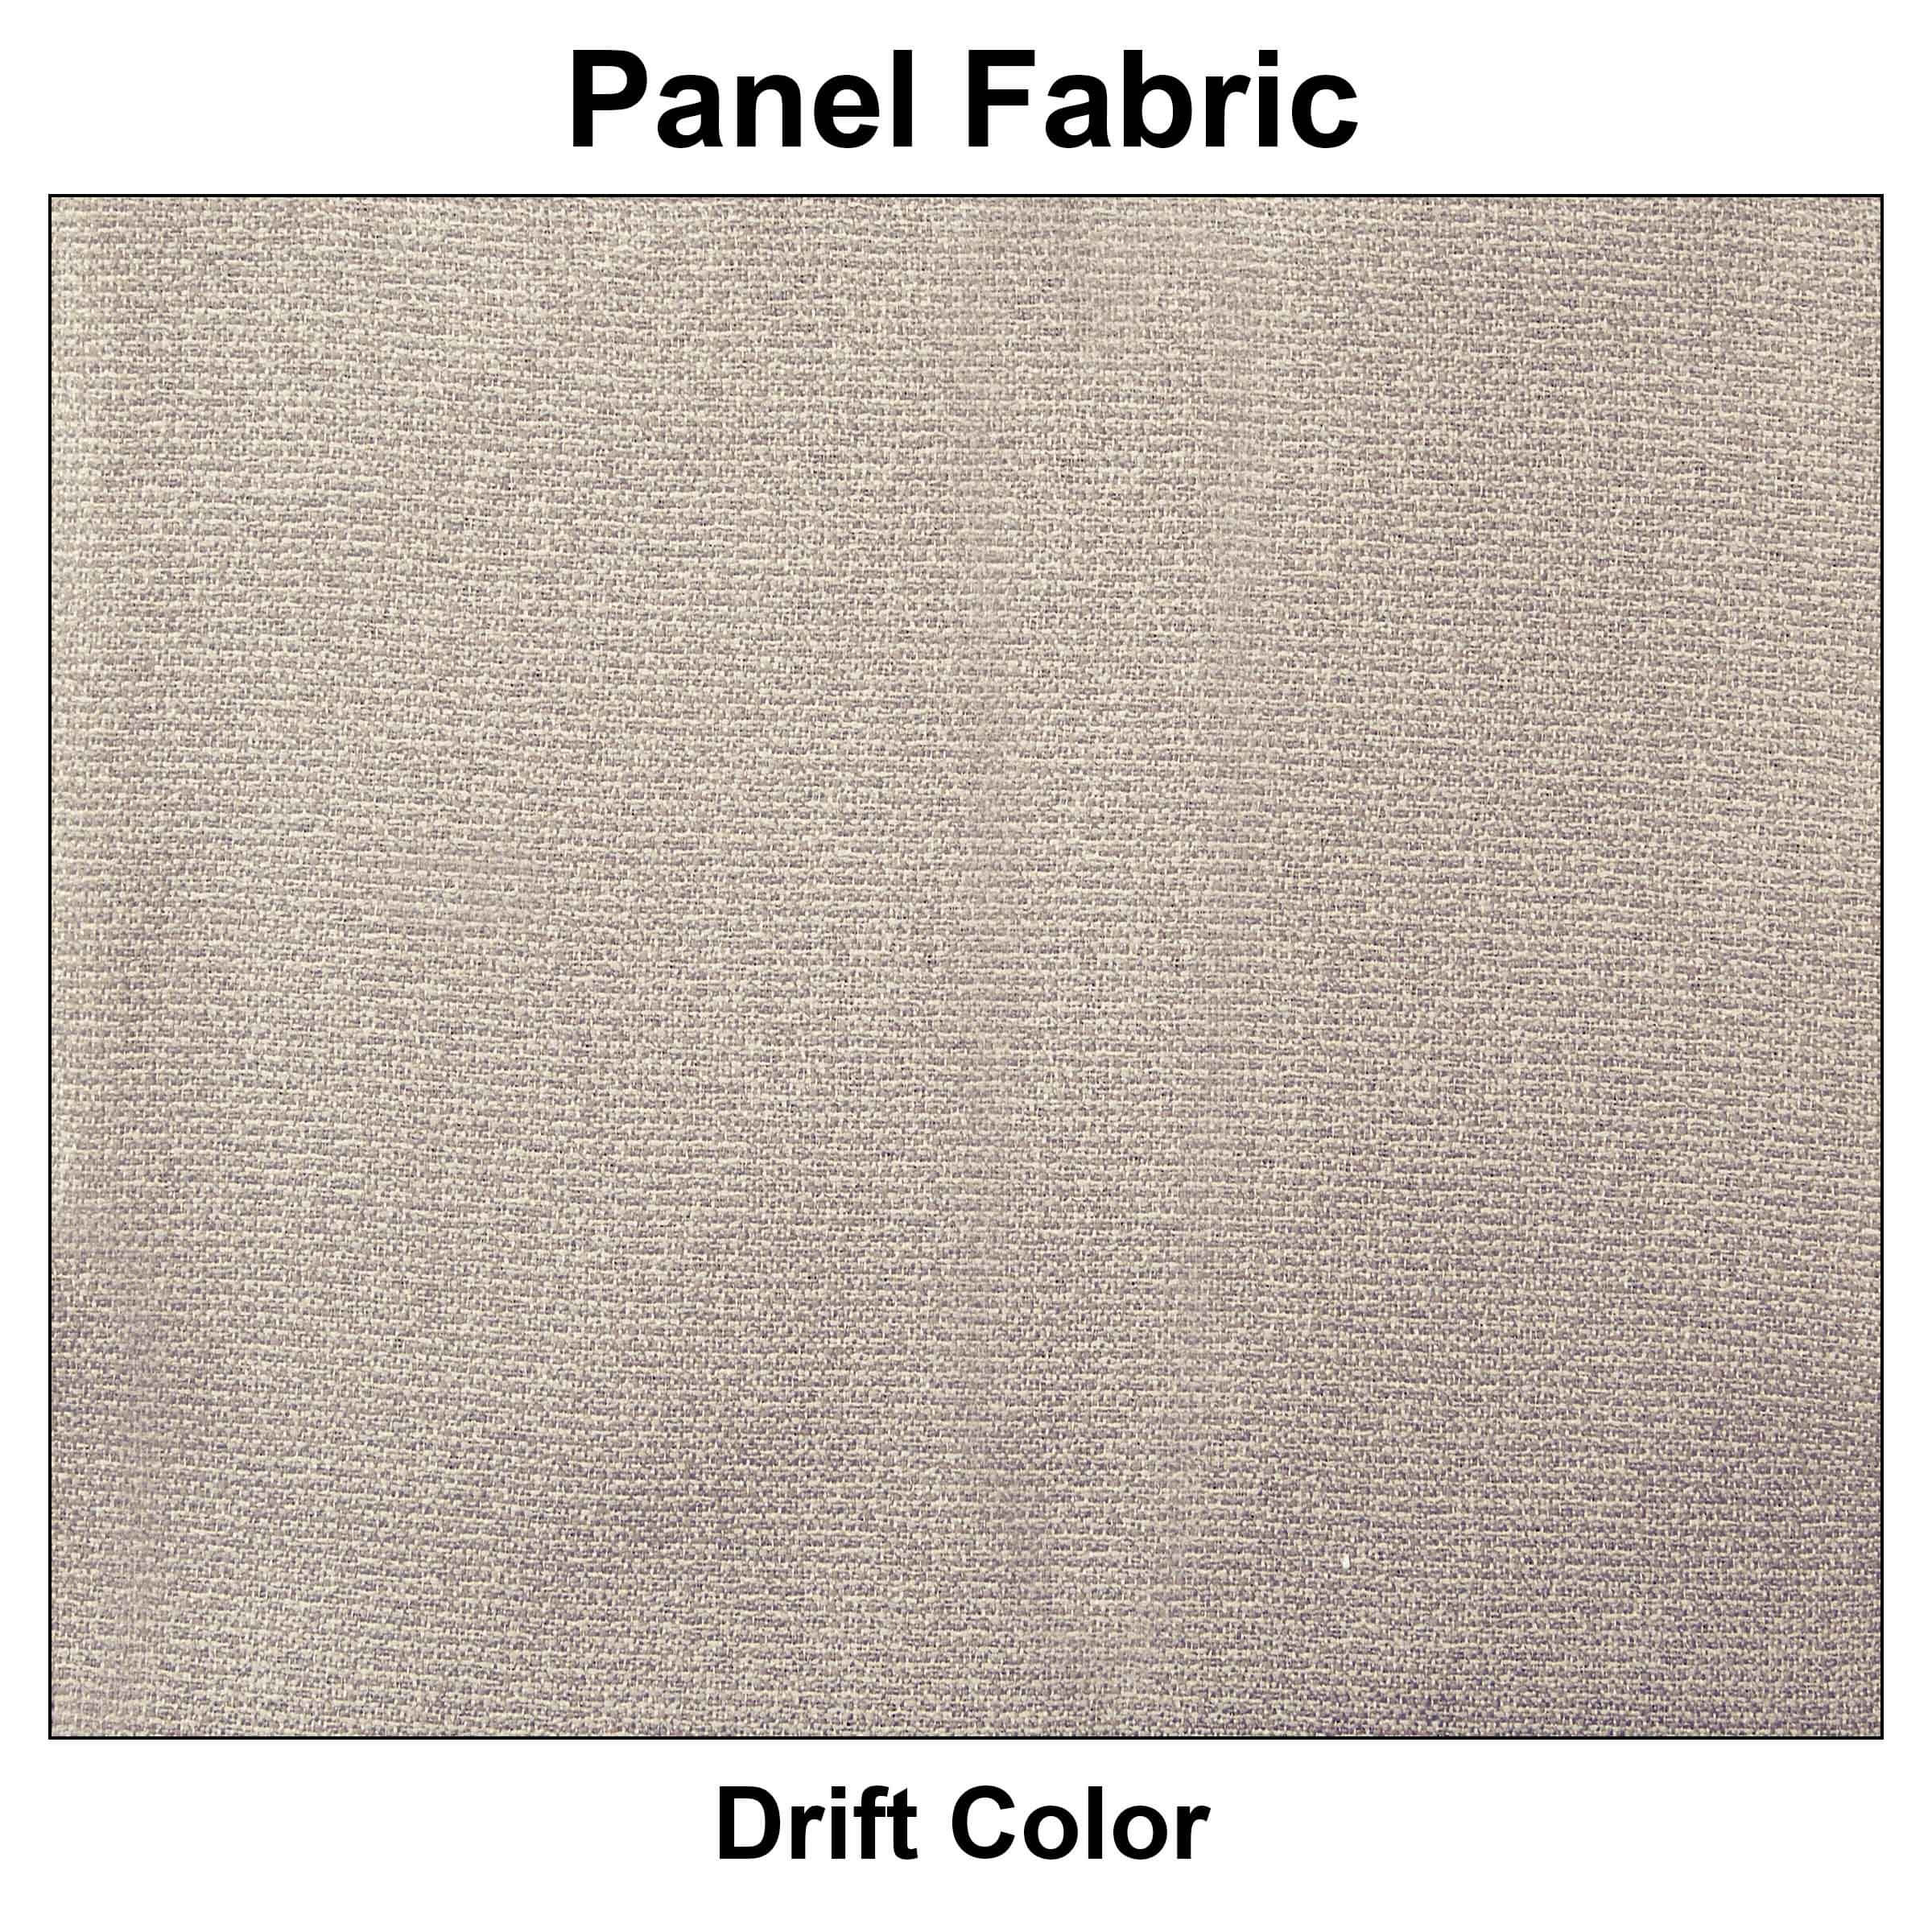 Tall cubicles single fabric color